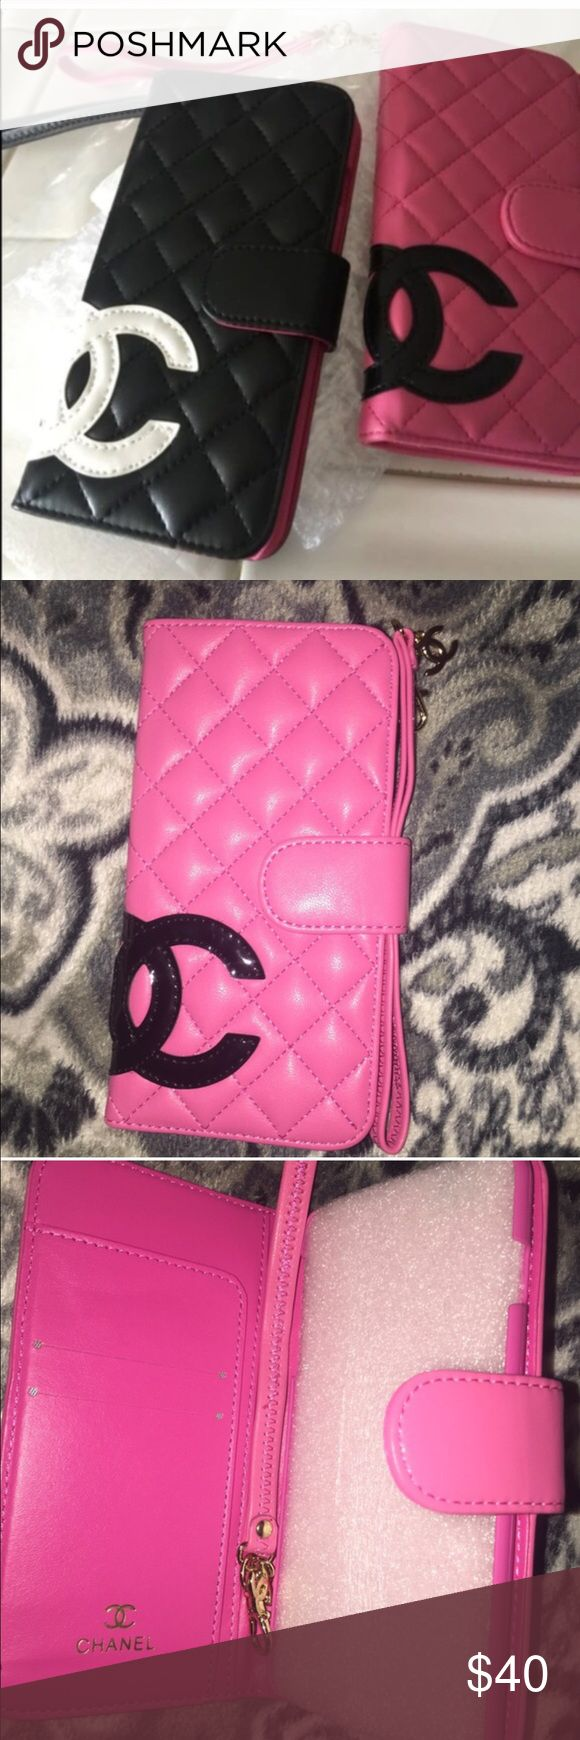 """💕Pink/Black """"Chanel"""" iPhone Wristlet💕 This ONLY fits a iPhone 6/6s! This listing is ONLY FOR 1 CASE! 🚨PRICE FIRM, no offers please😊 Accessories Phone Cases"""